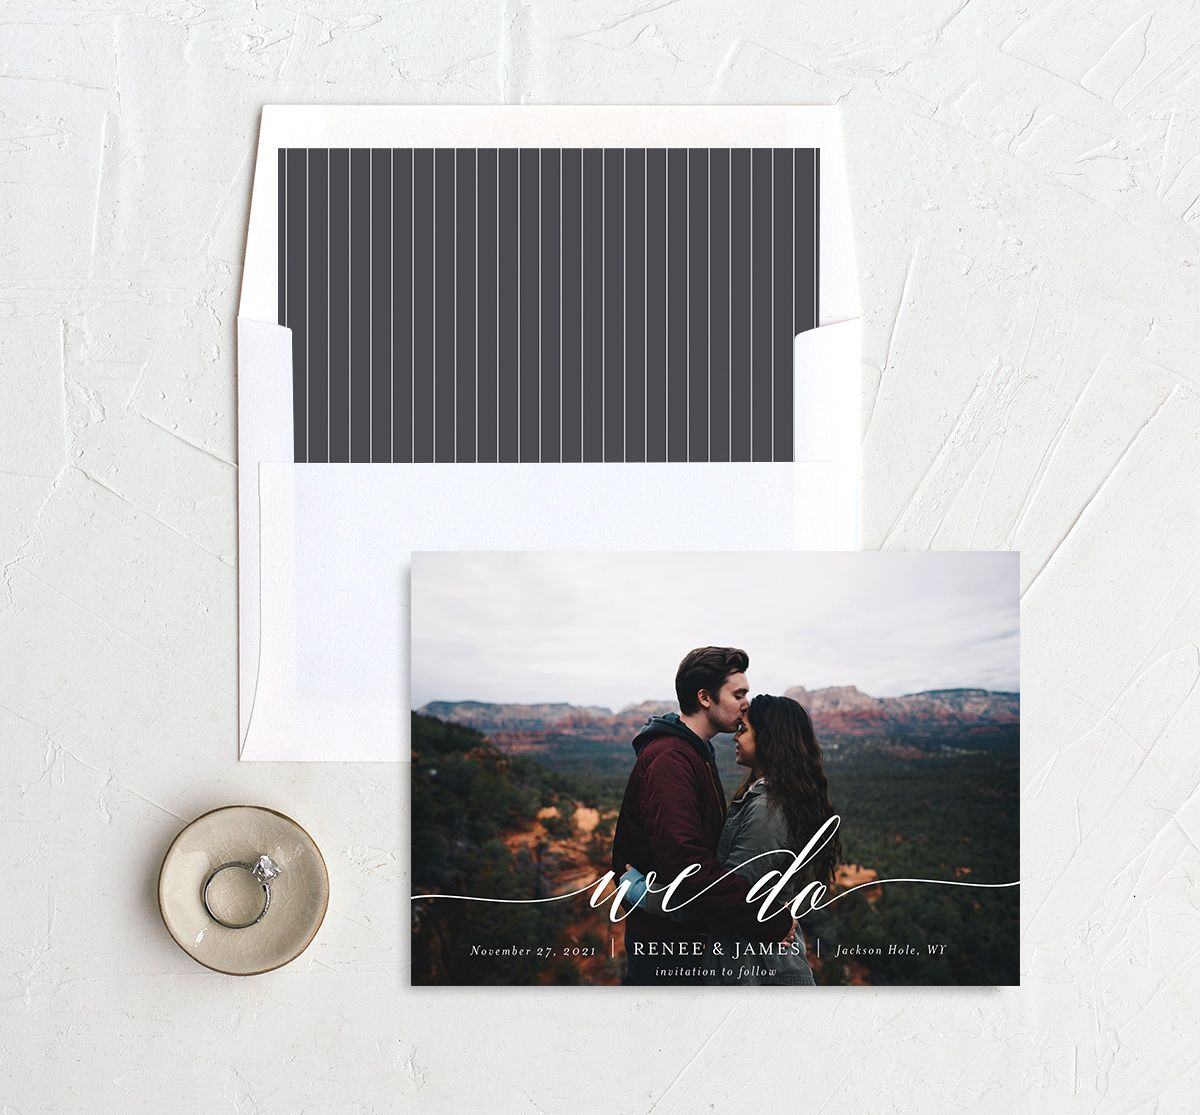 Scripted We Do Photo Wedding Announcements in grey with liner